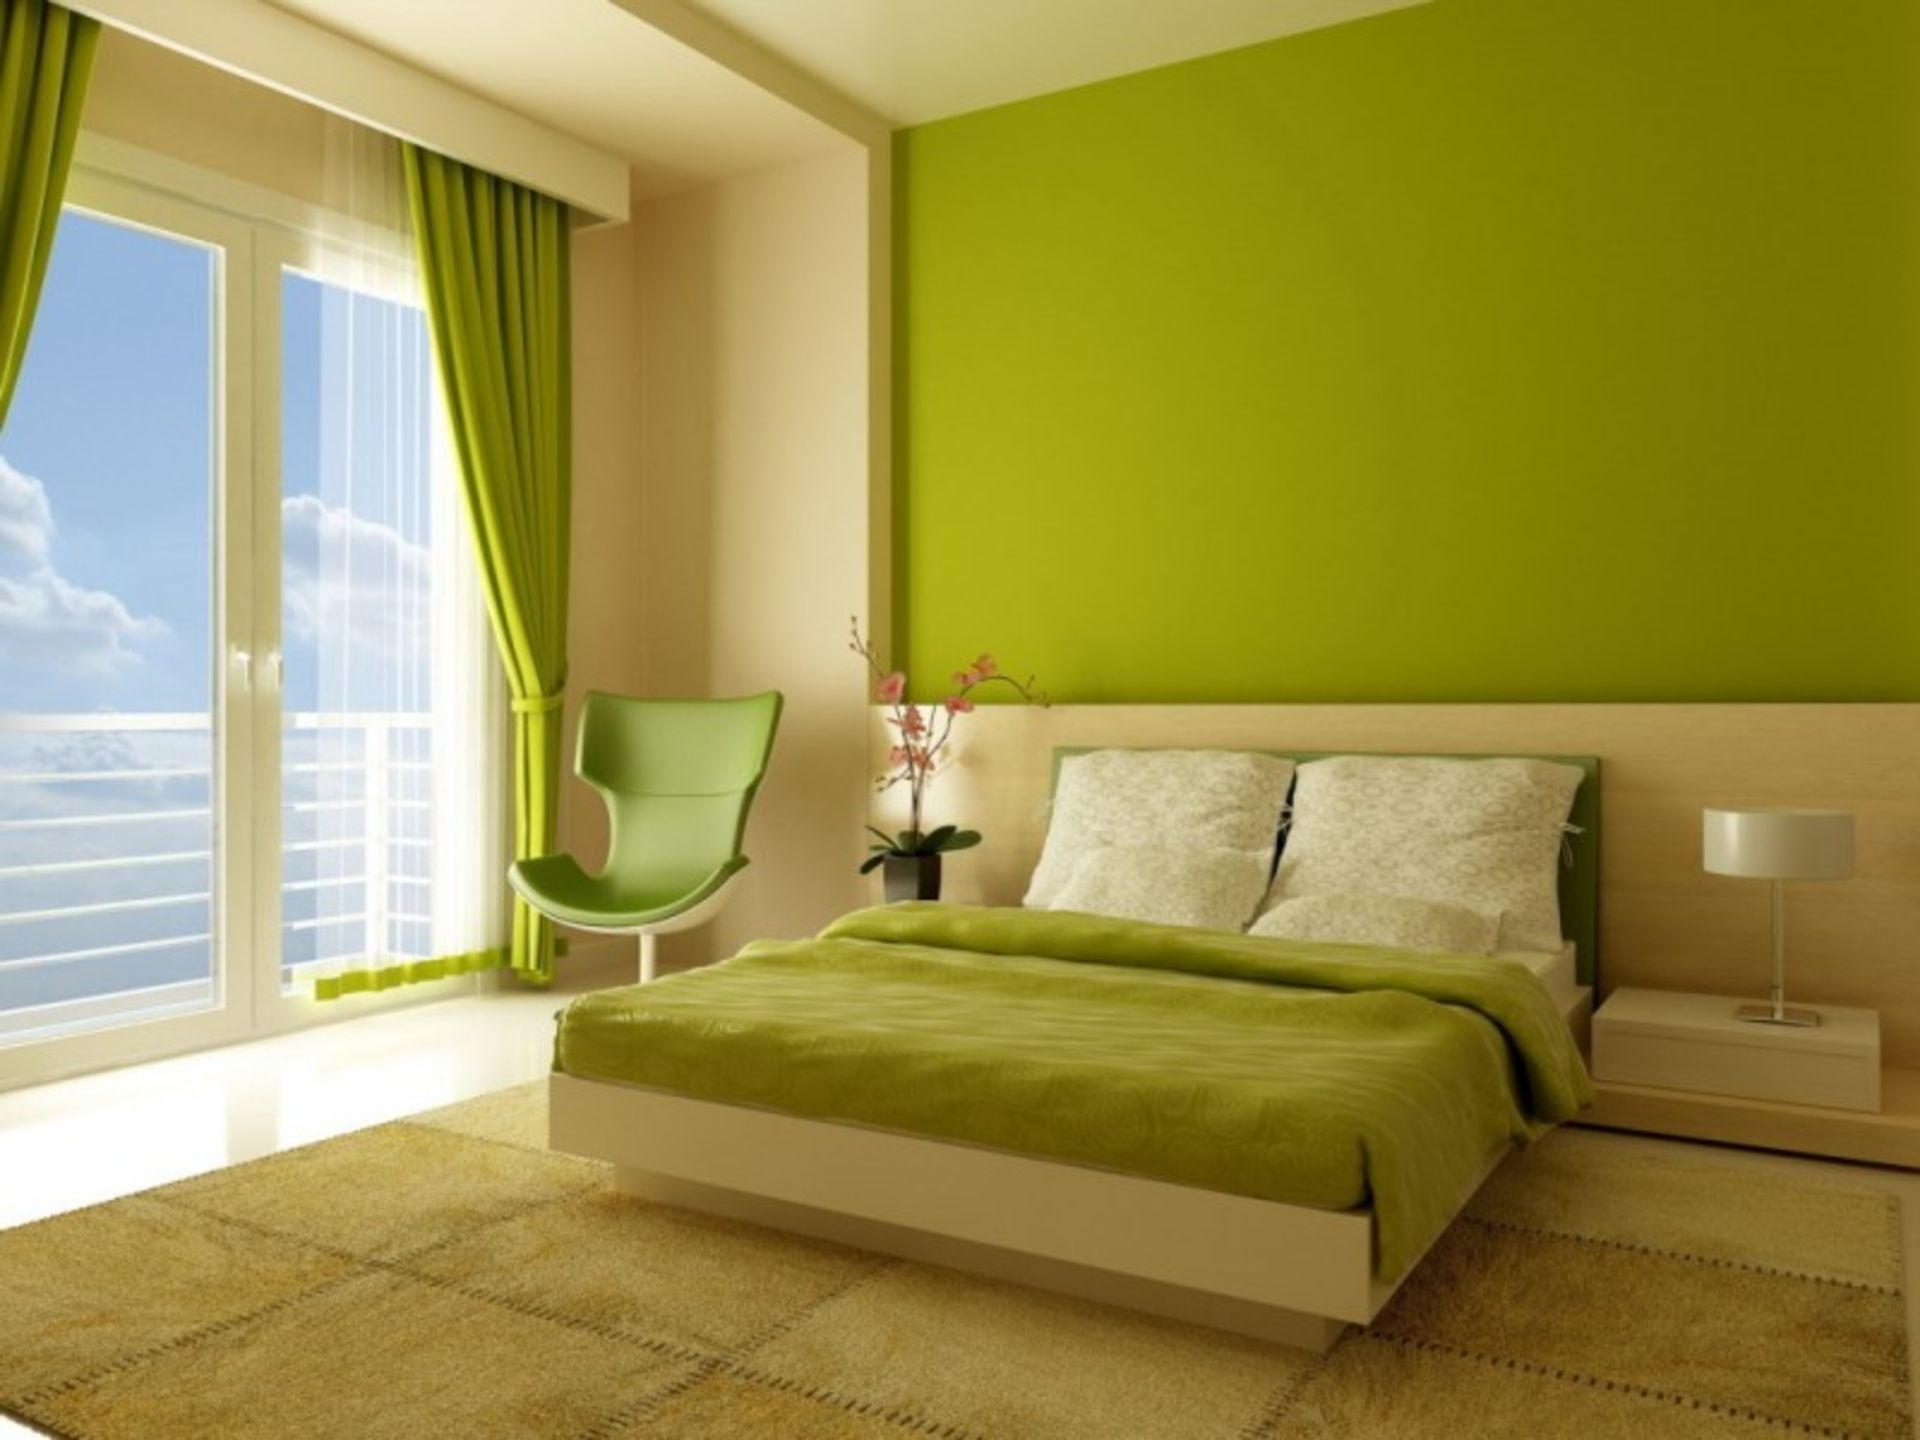 Green curtains for bedroom - Furniture Lime Green Floral Curtain Fabric Design For Modern Minimalist Living Room With Lime Green Area Rugs Over Modern White Coffee Table Also With